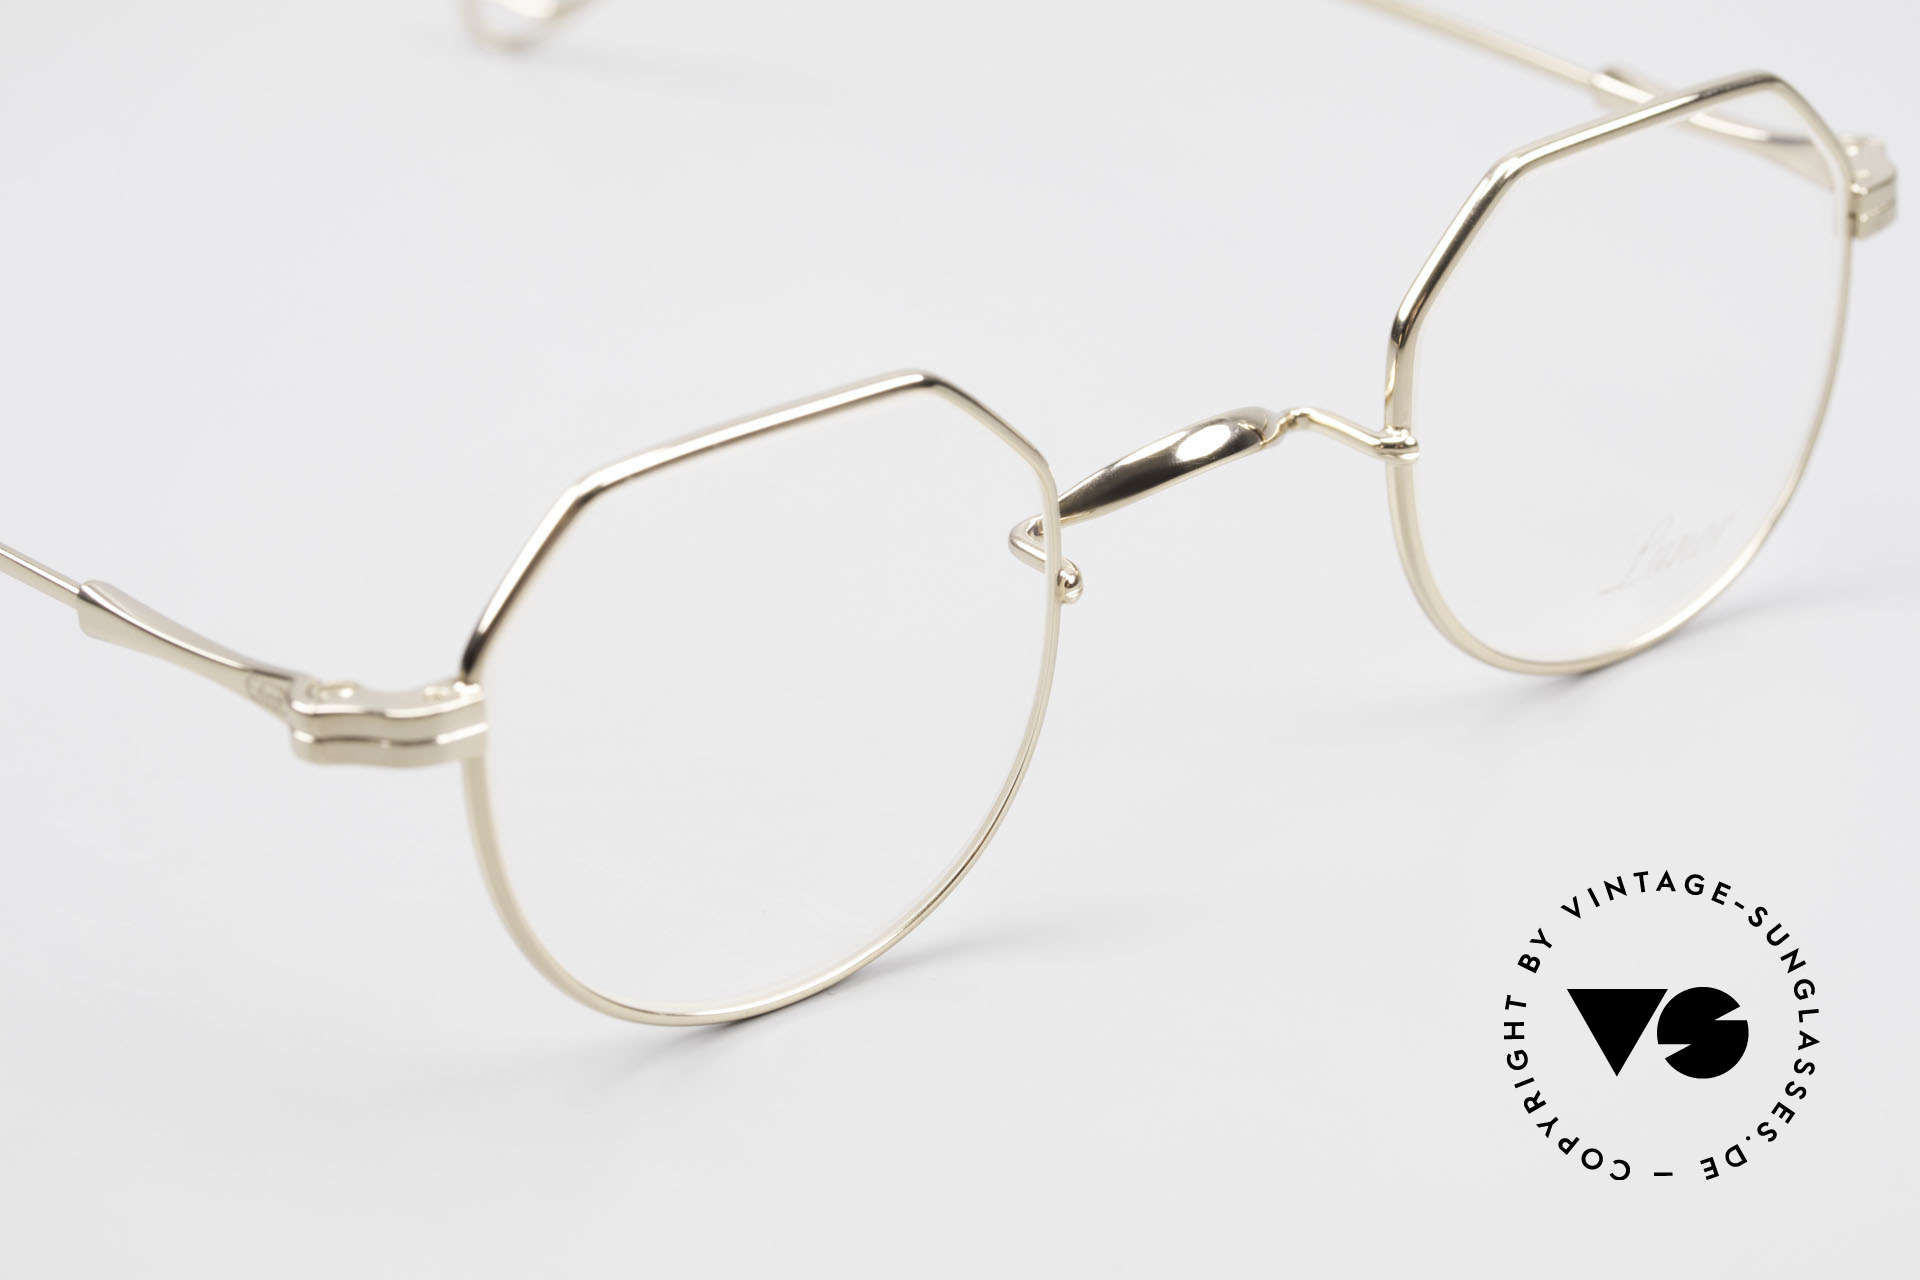 Lunor II 18 Hybrid Panto Frame Gold Plated, NO RETRO EYEGLASSES; but a luxury vintage Original, Made for Men and Women